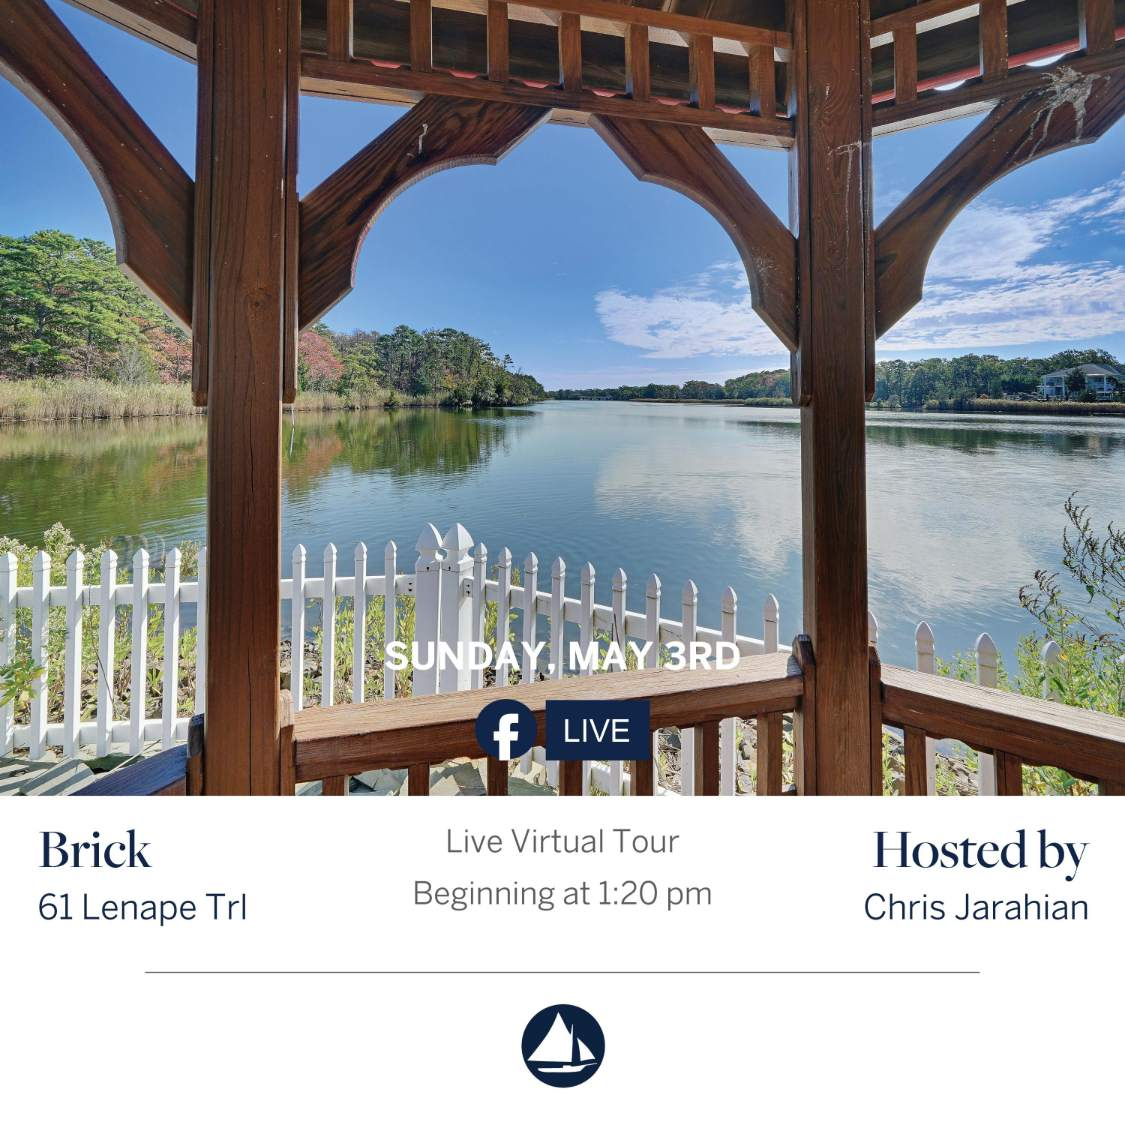 61 Lenape Trl - May 3rd Virtual Open House on FB Live